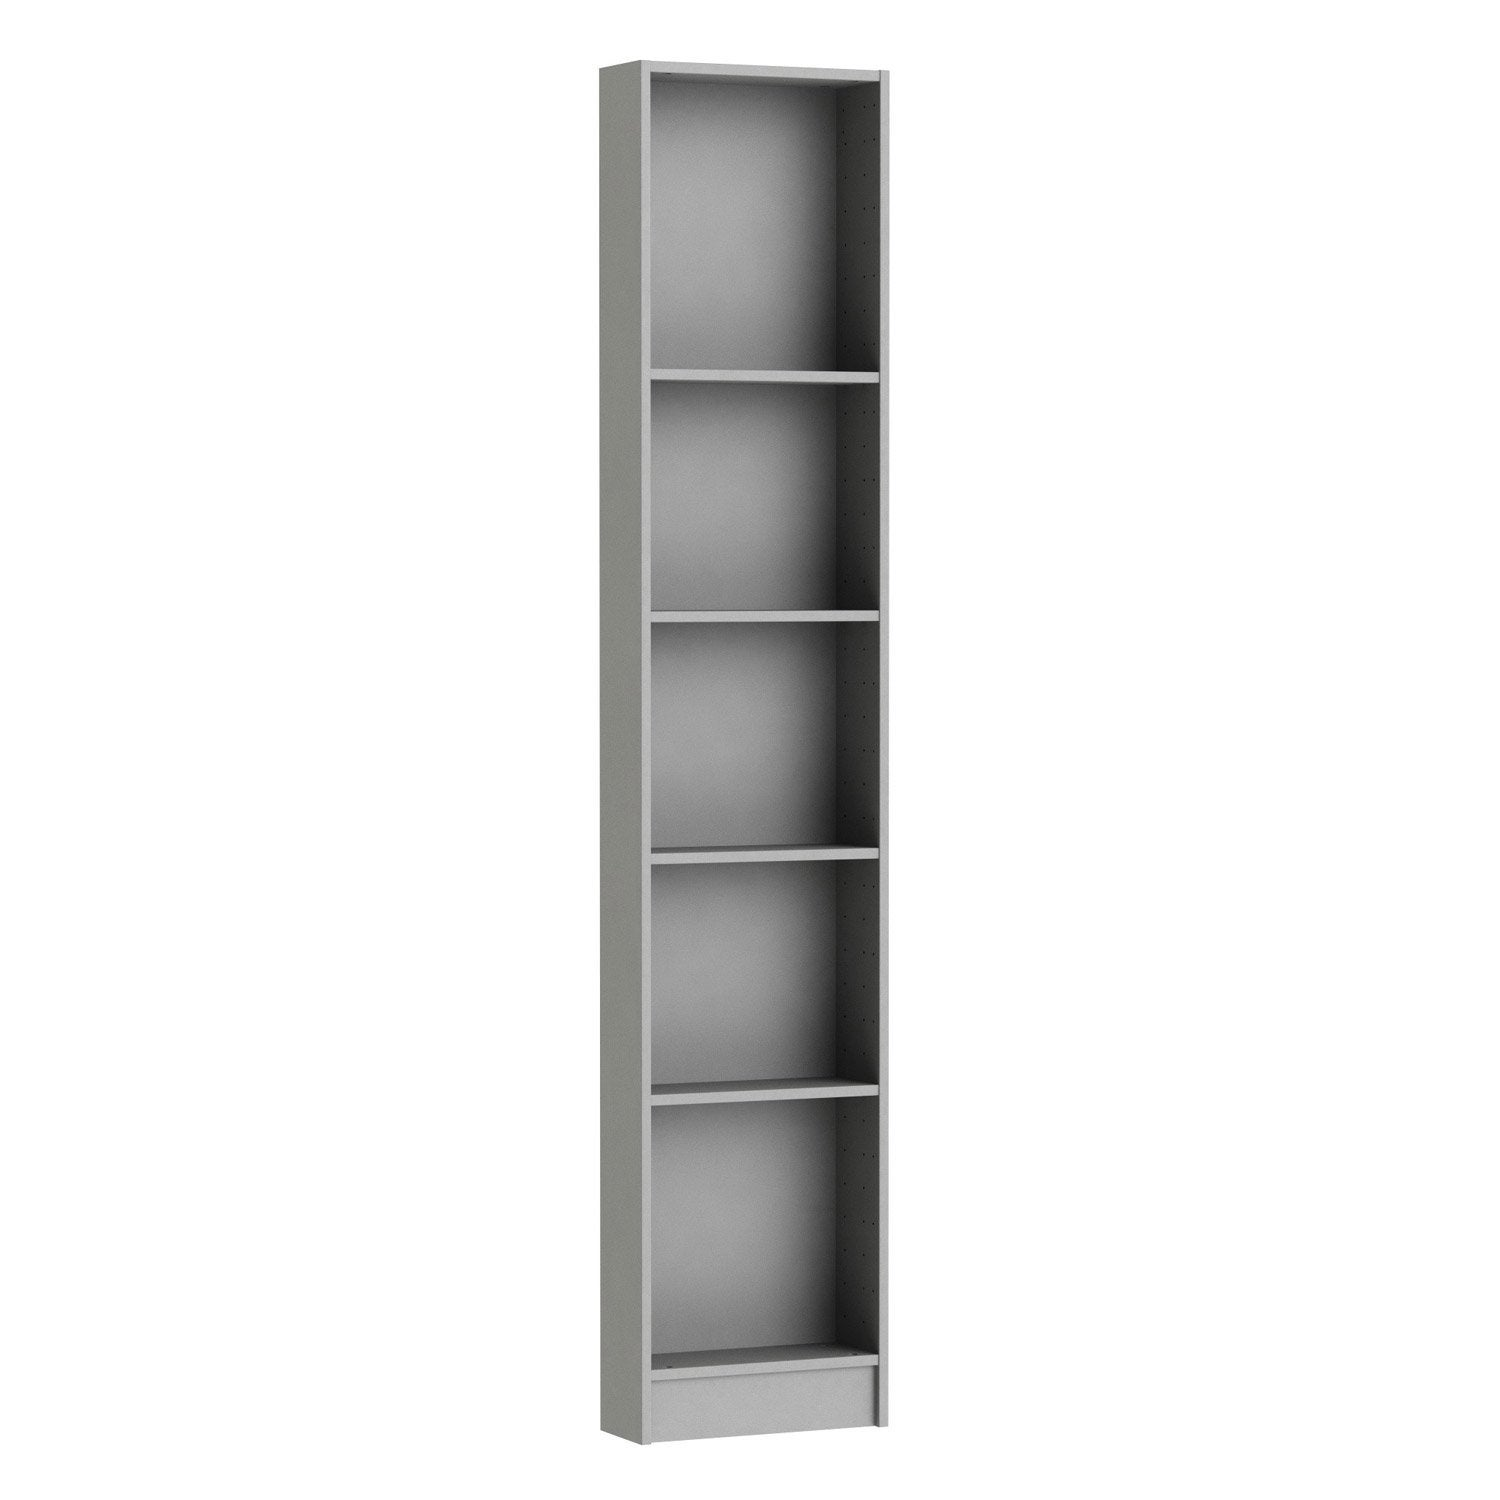 Caisson SPACEO Home 200 x 40 x 15 cm, anthracite | Leroy Merlin